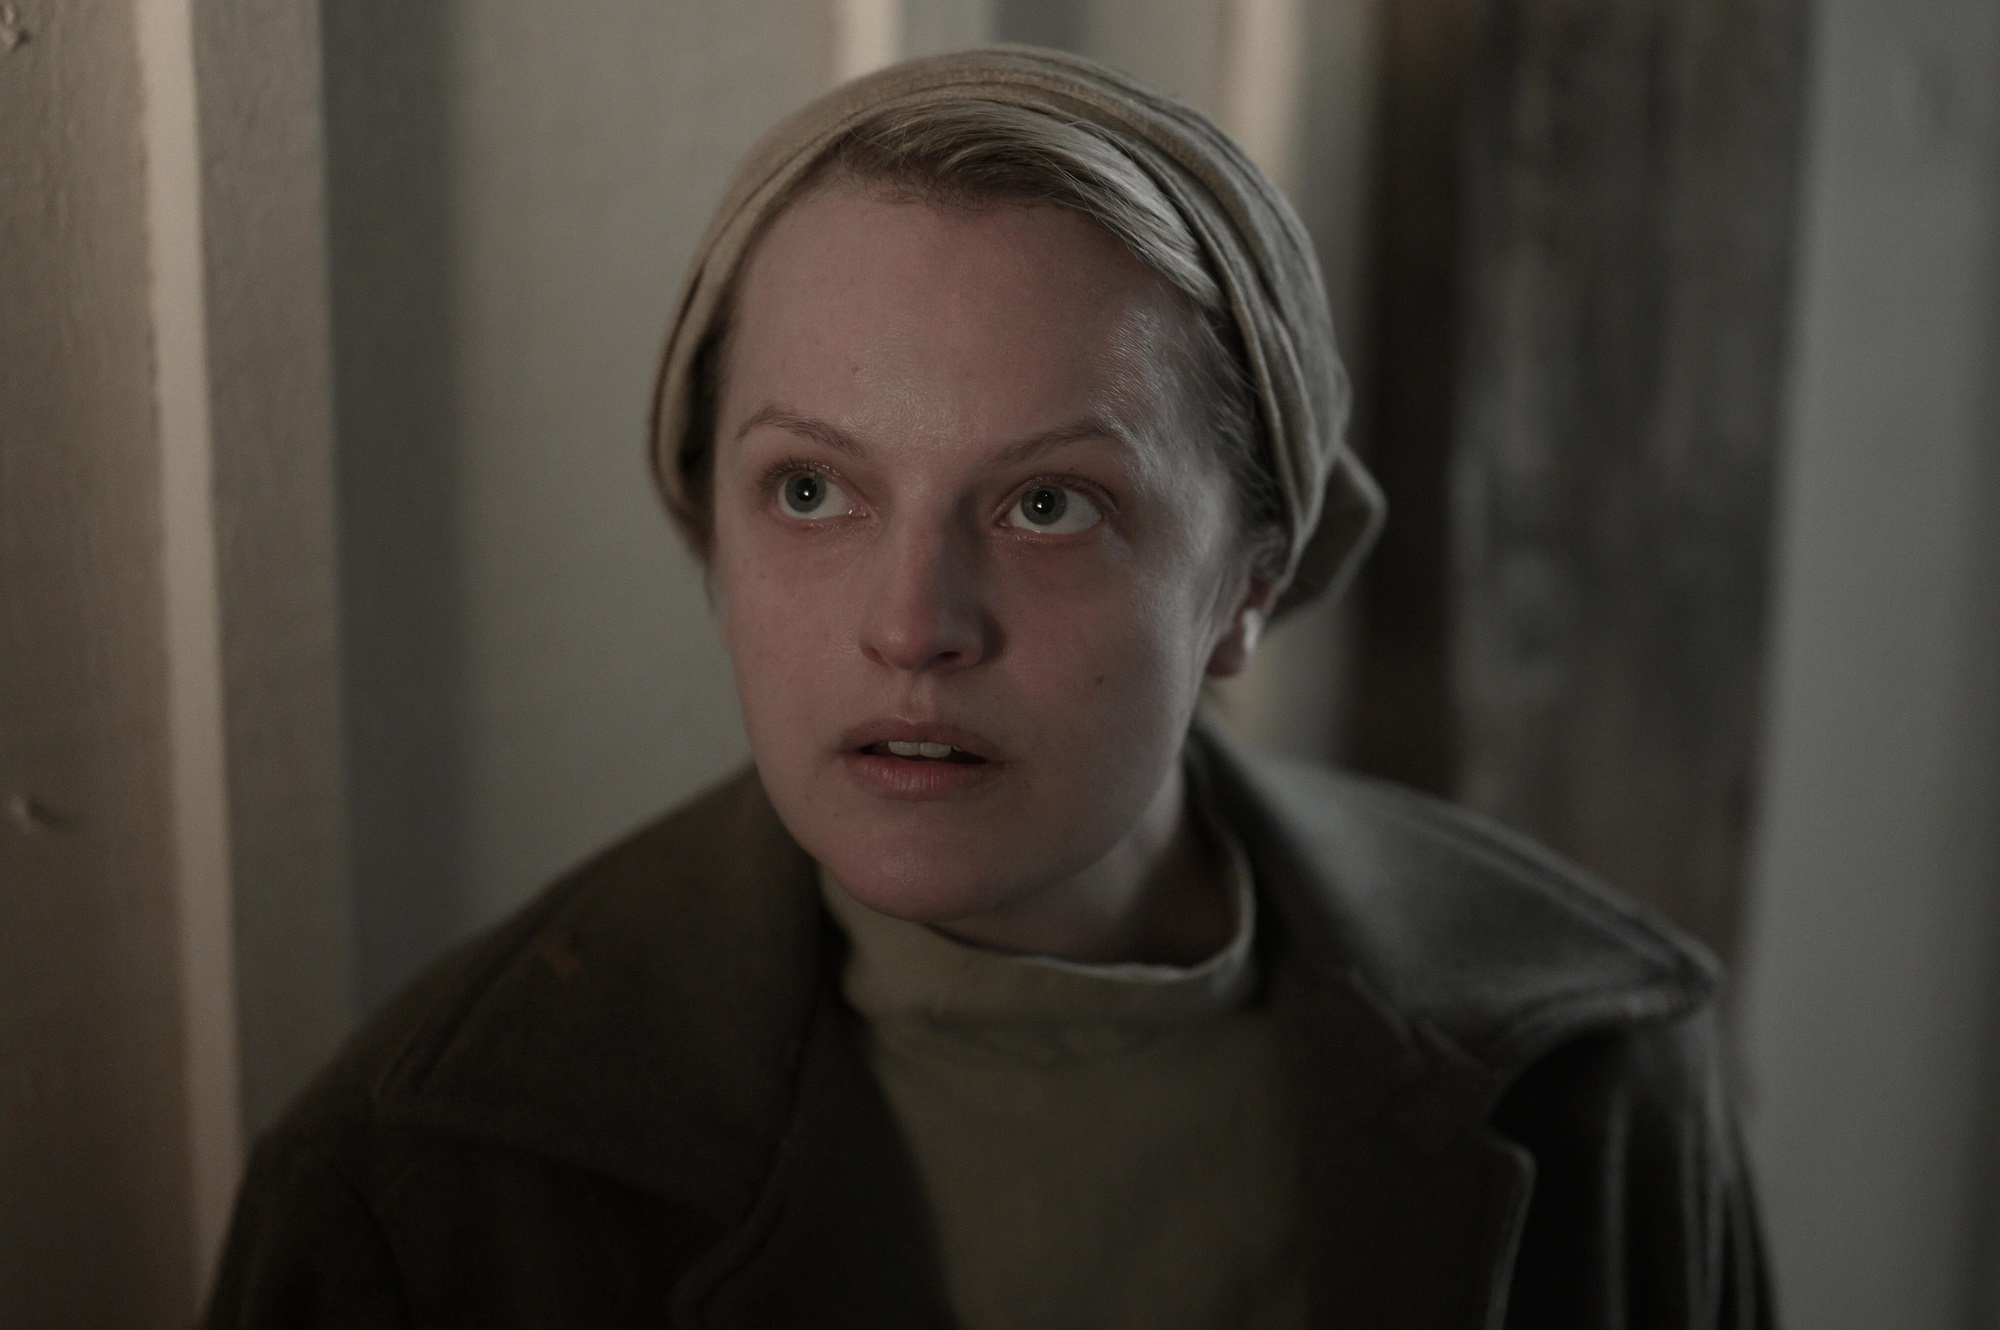 The Handmaid's Tale Season 4 Episode 4 Release Date, Preview and Spoilers